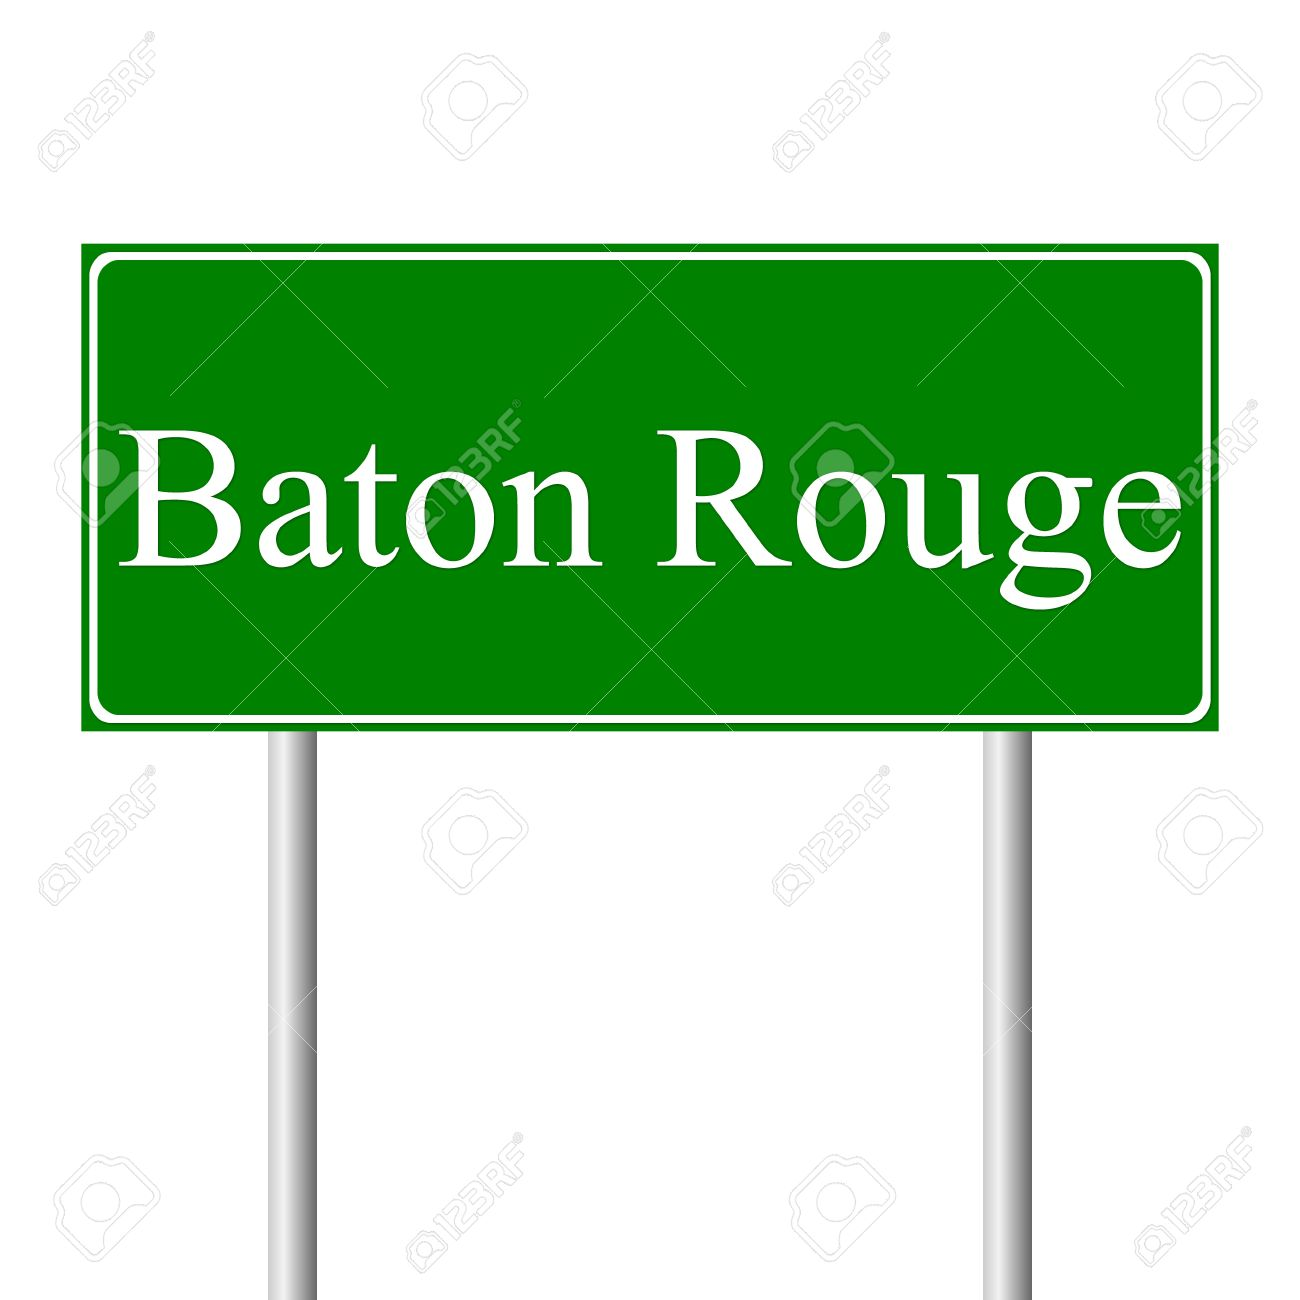 Baton Rouge Green Road Sign Isolated On White Background Royalty.